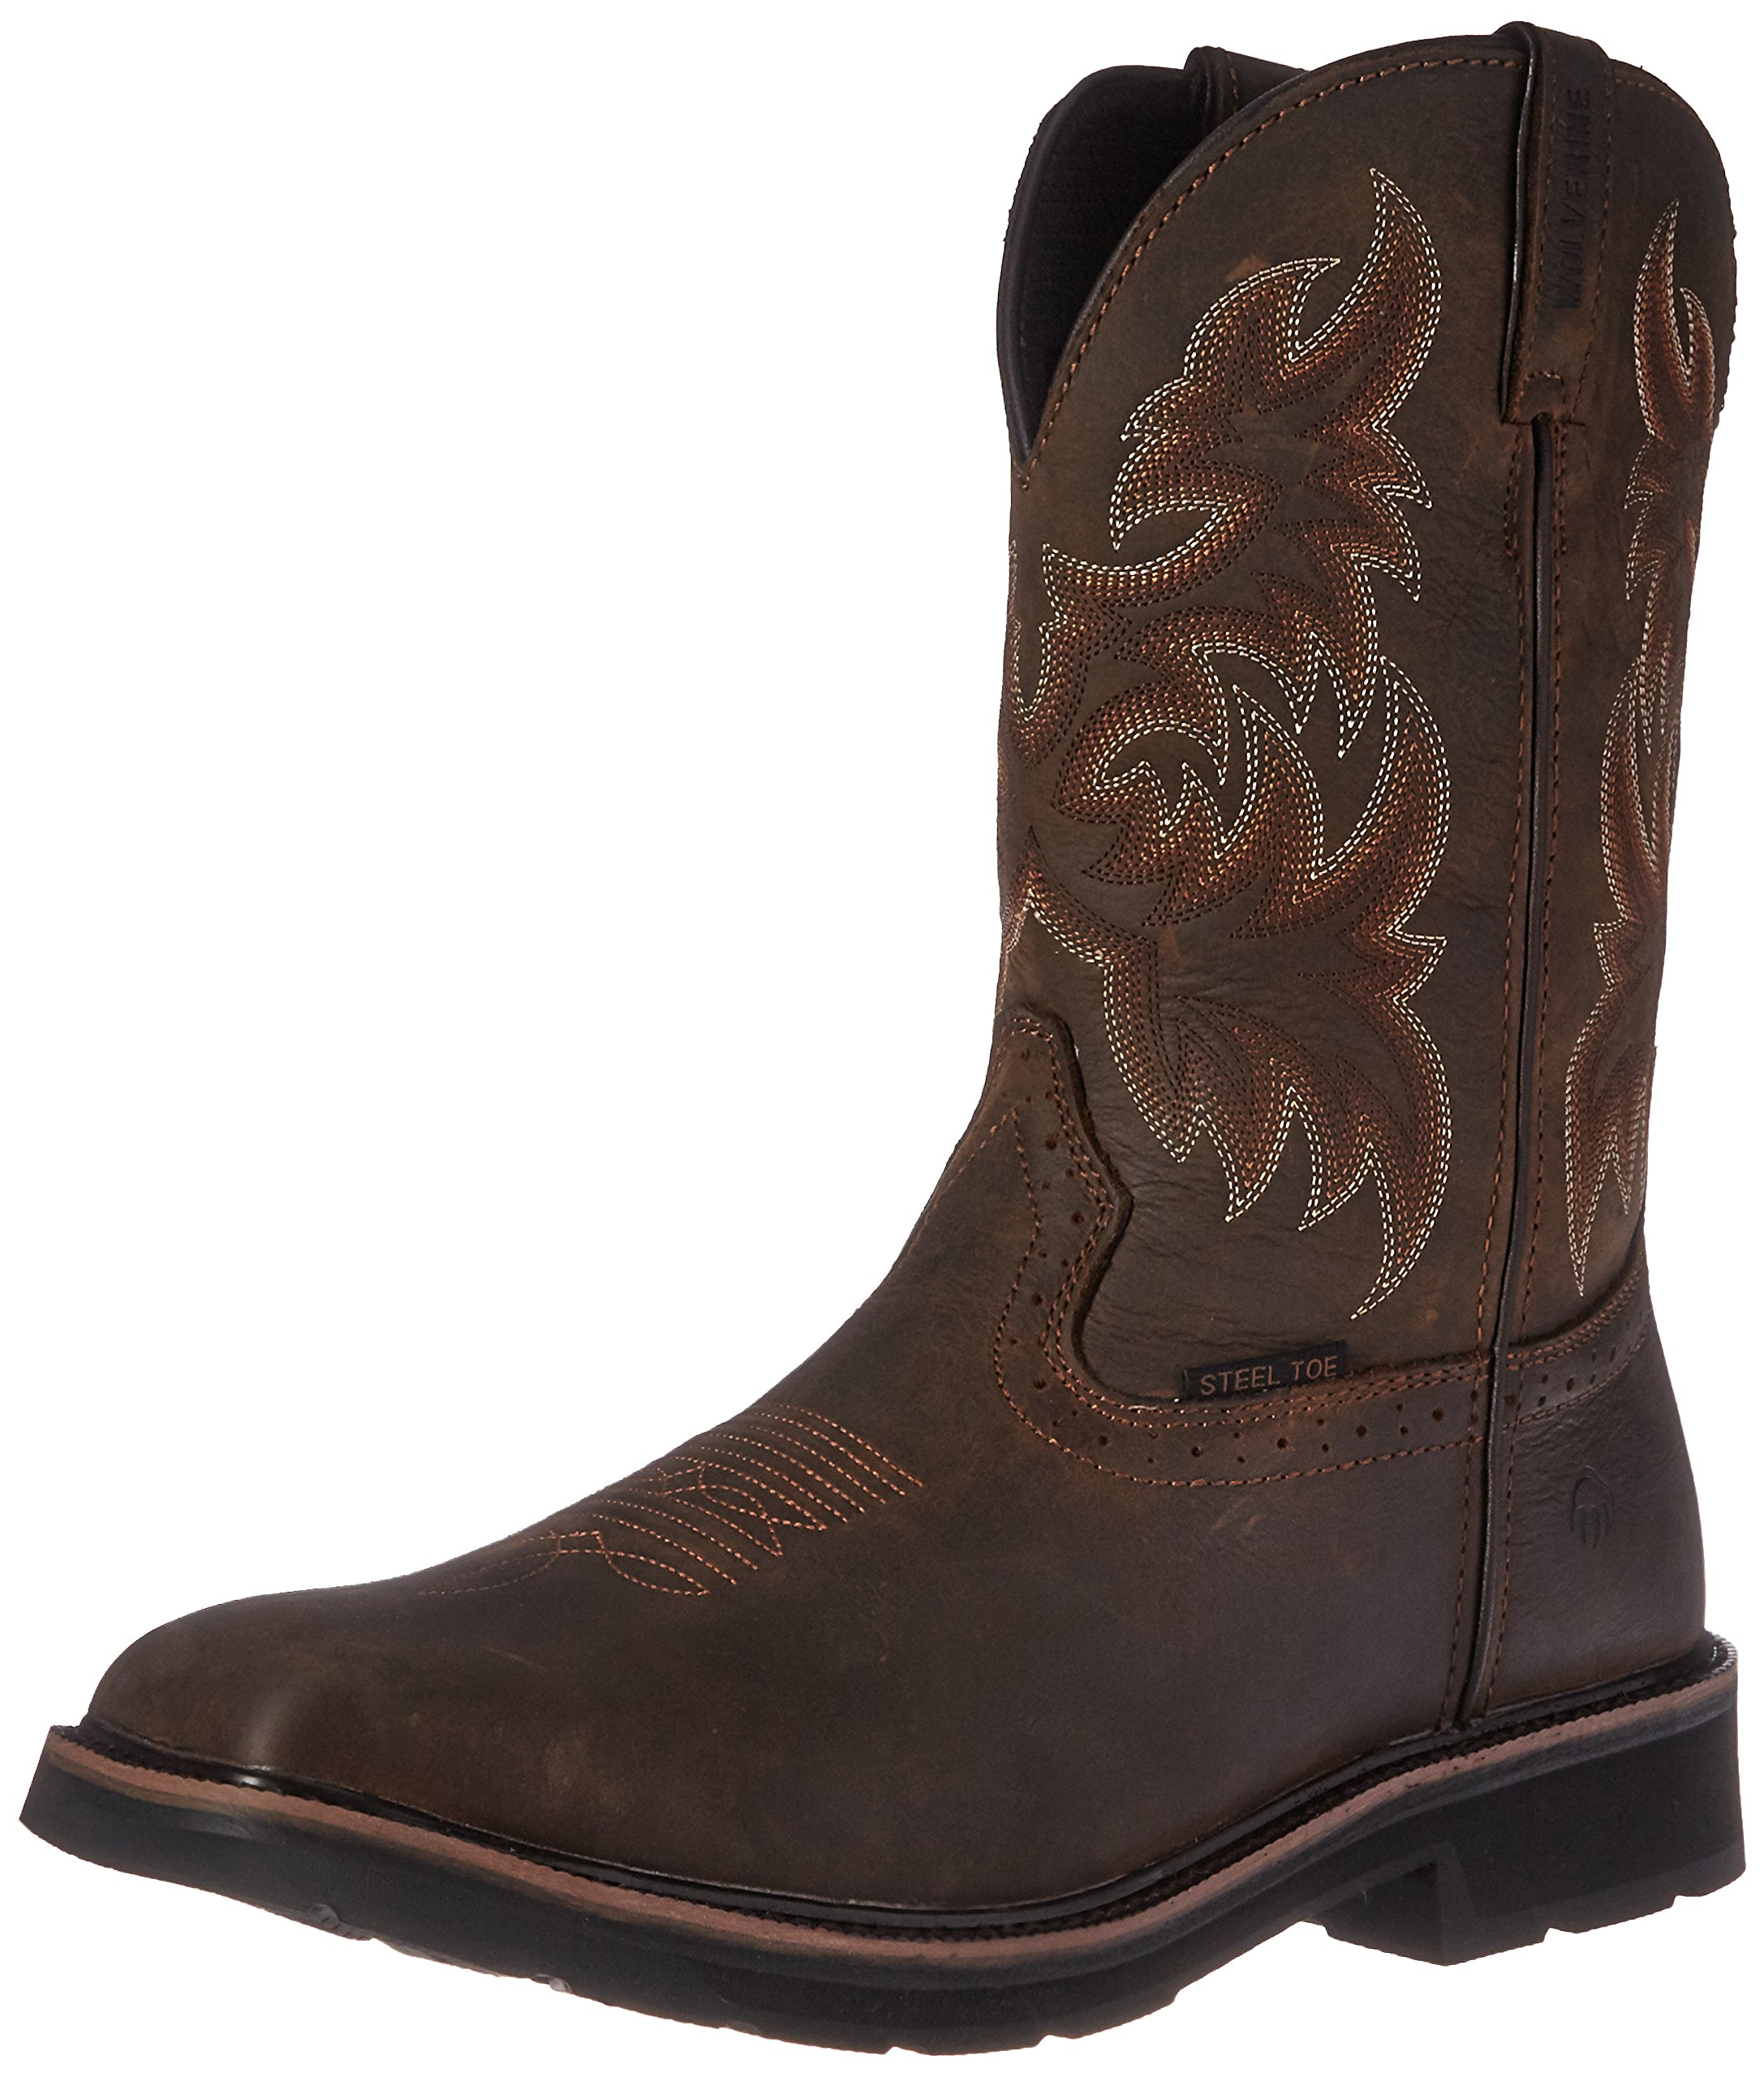 Wolverine Men's Rancher 10'' Square Steel Toe Work Boot, Dark Brown/Rust, 9 M US